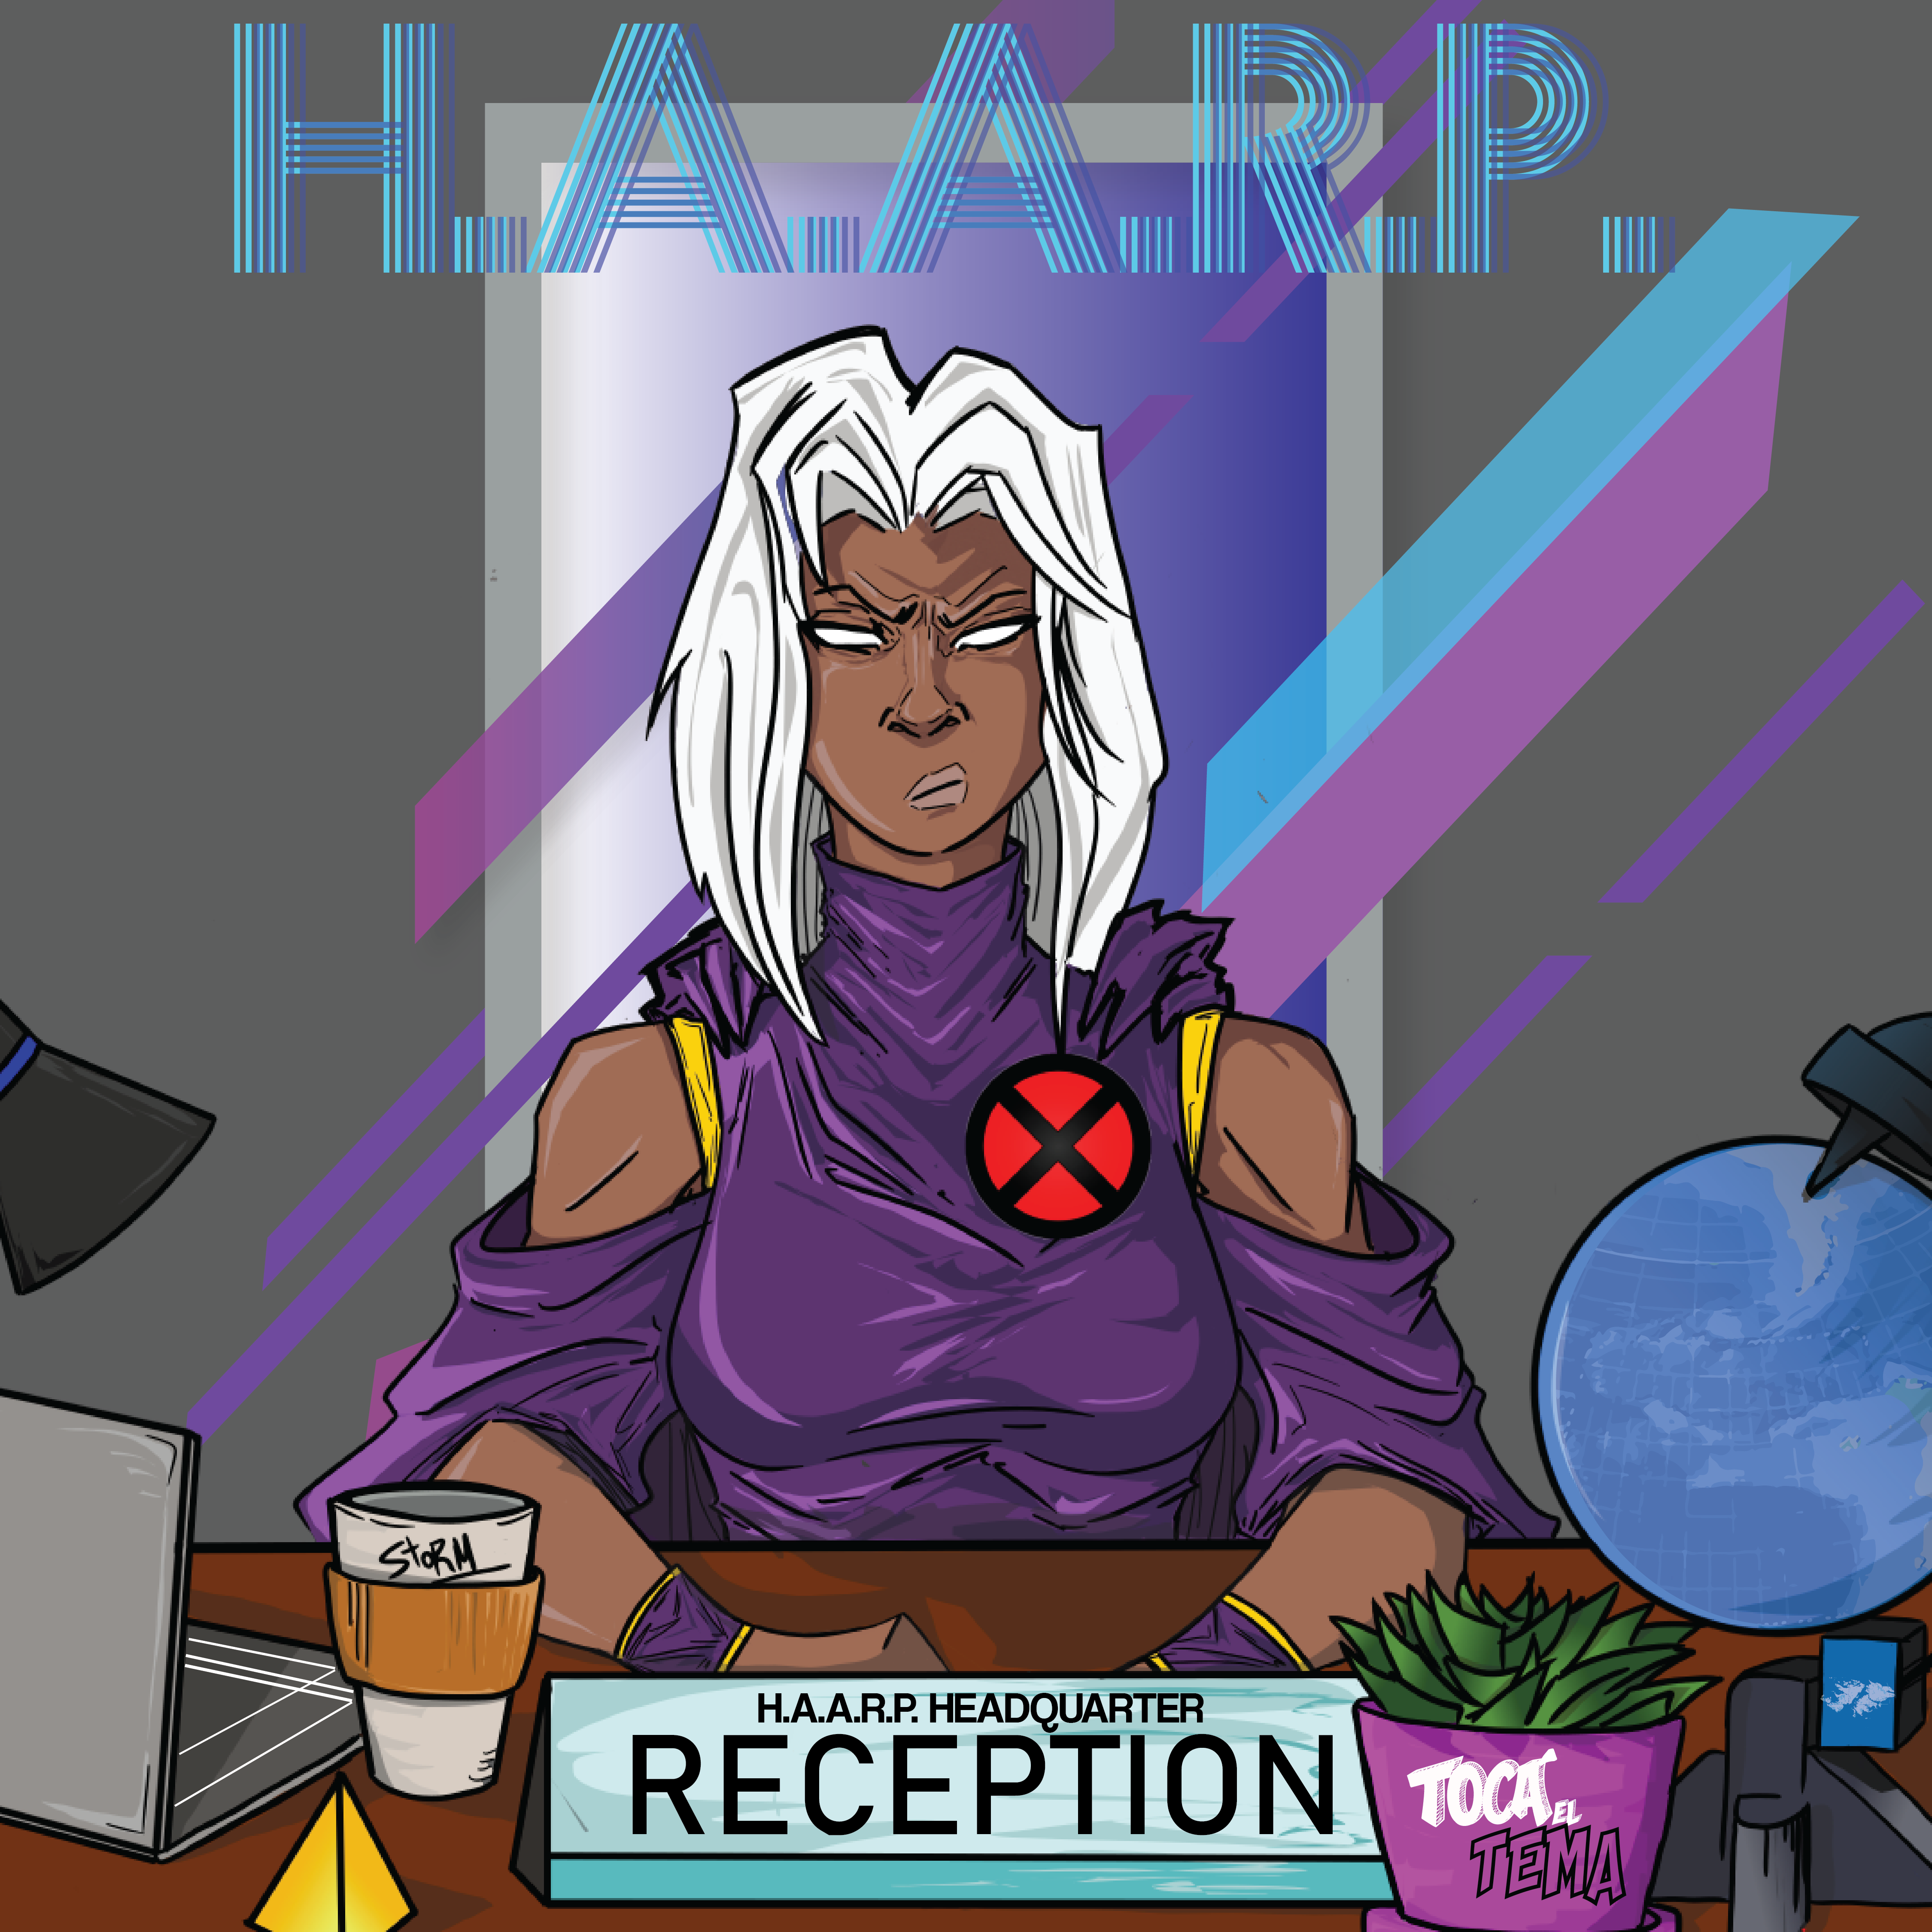 Storm at her new job in the h.a.a.r.p. headcuarters office